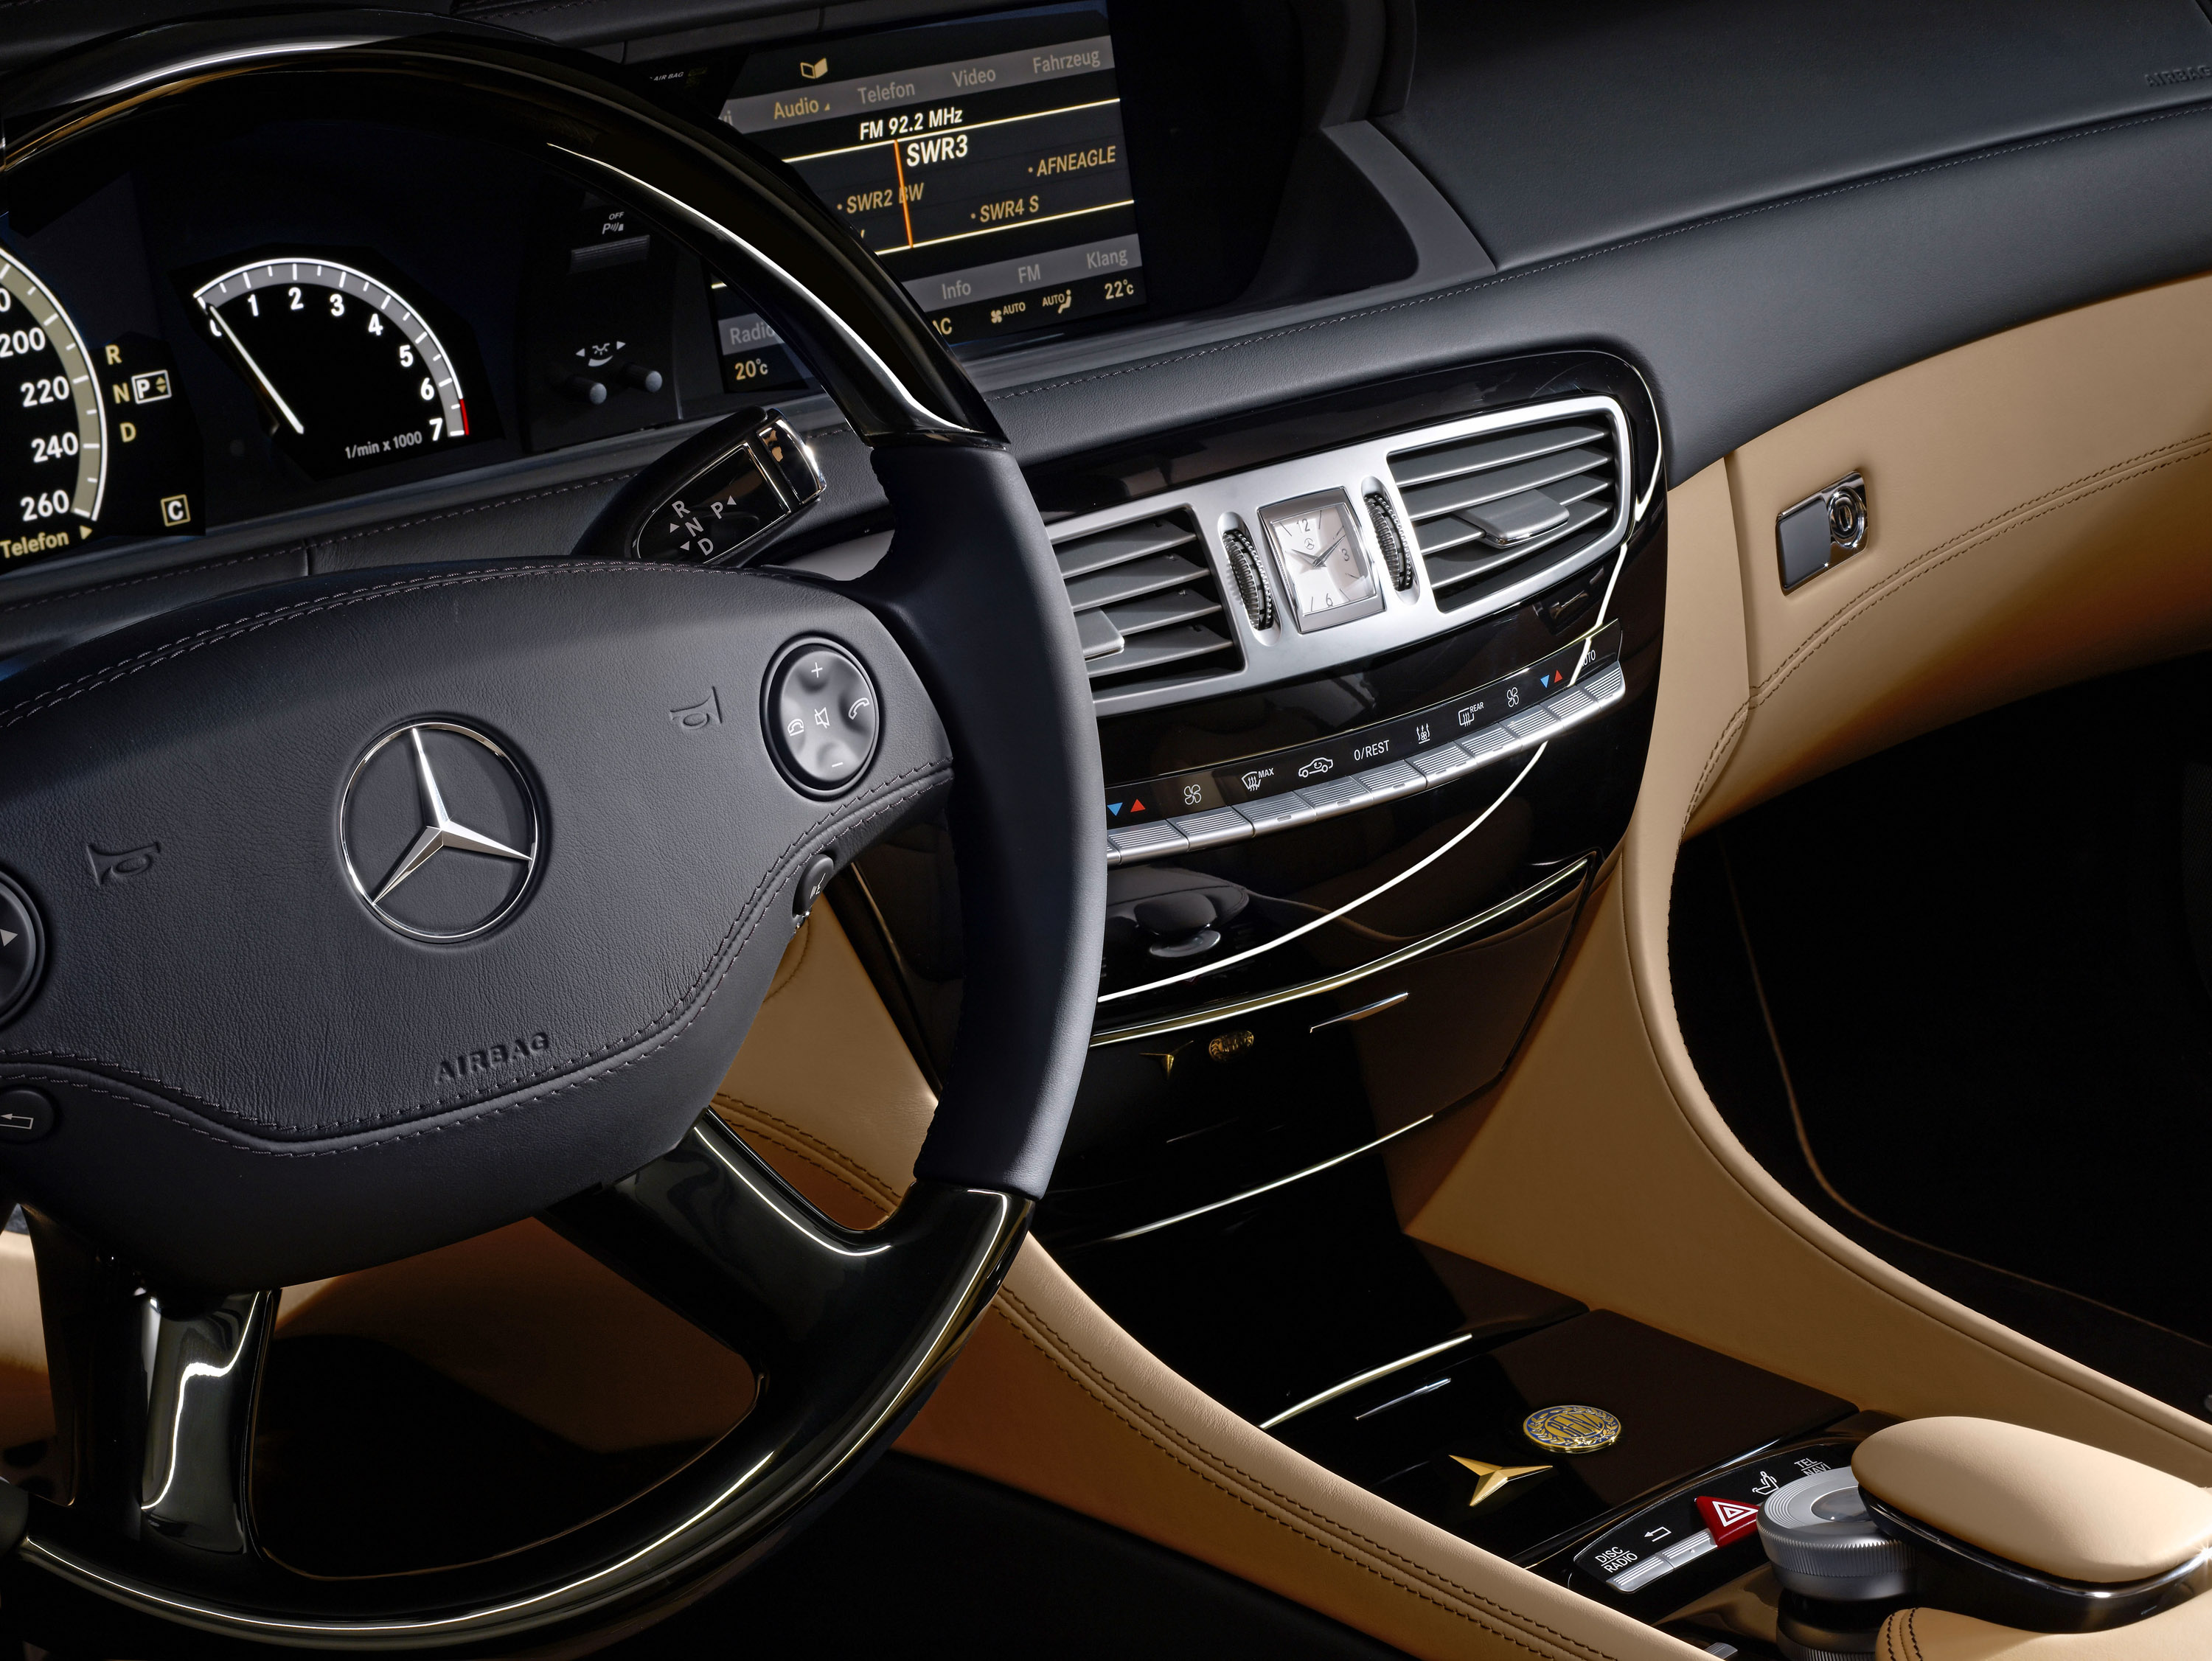 Car Brand Symbols >> Mercedes-Benz Special CL 500 model - 100 years Anniversary edition with exclusive appointments